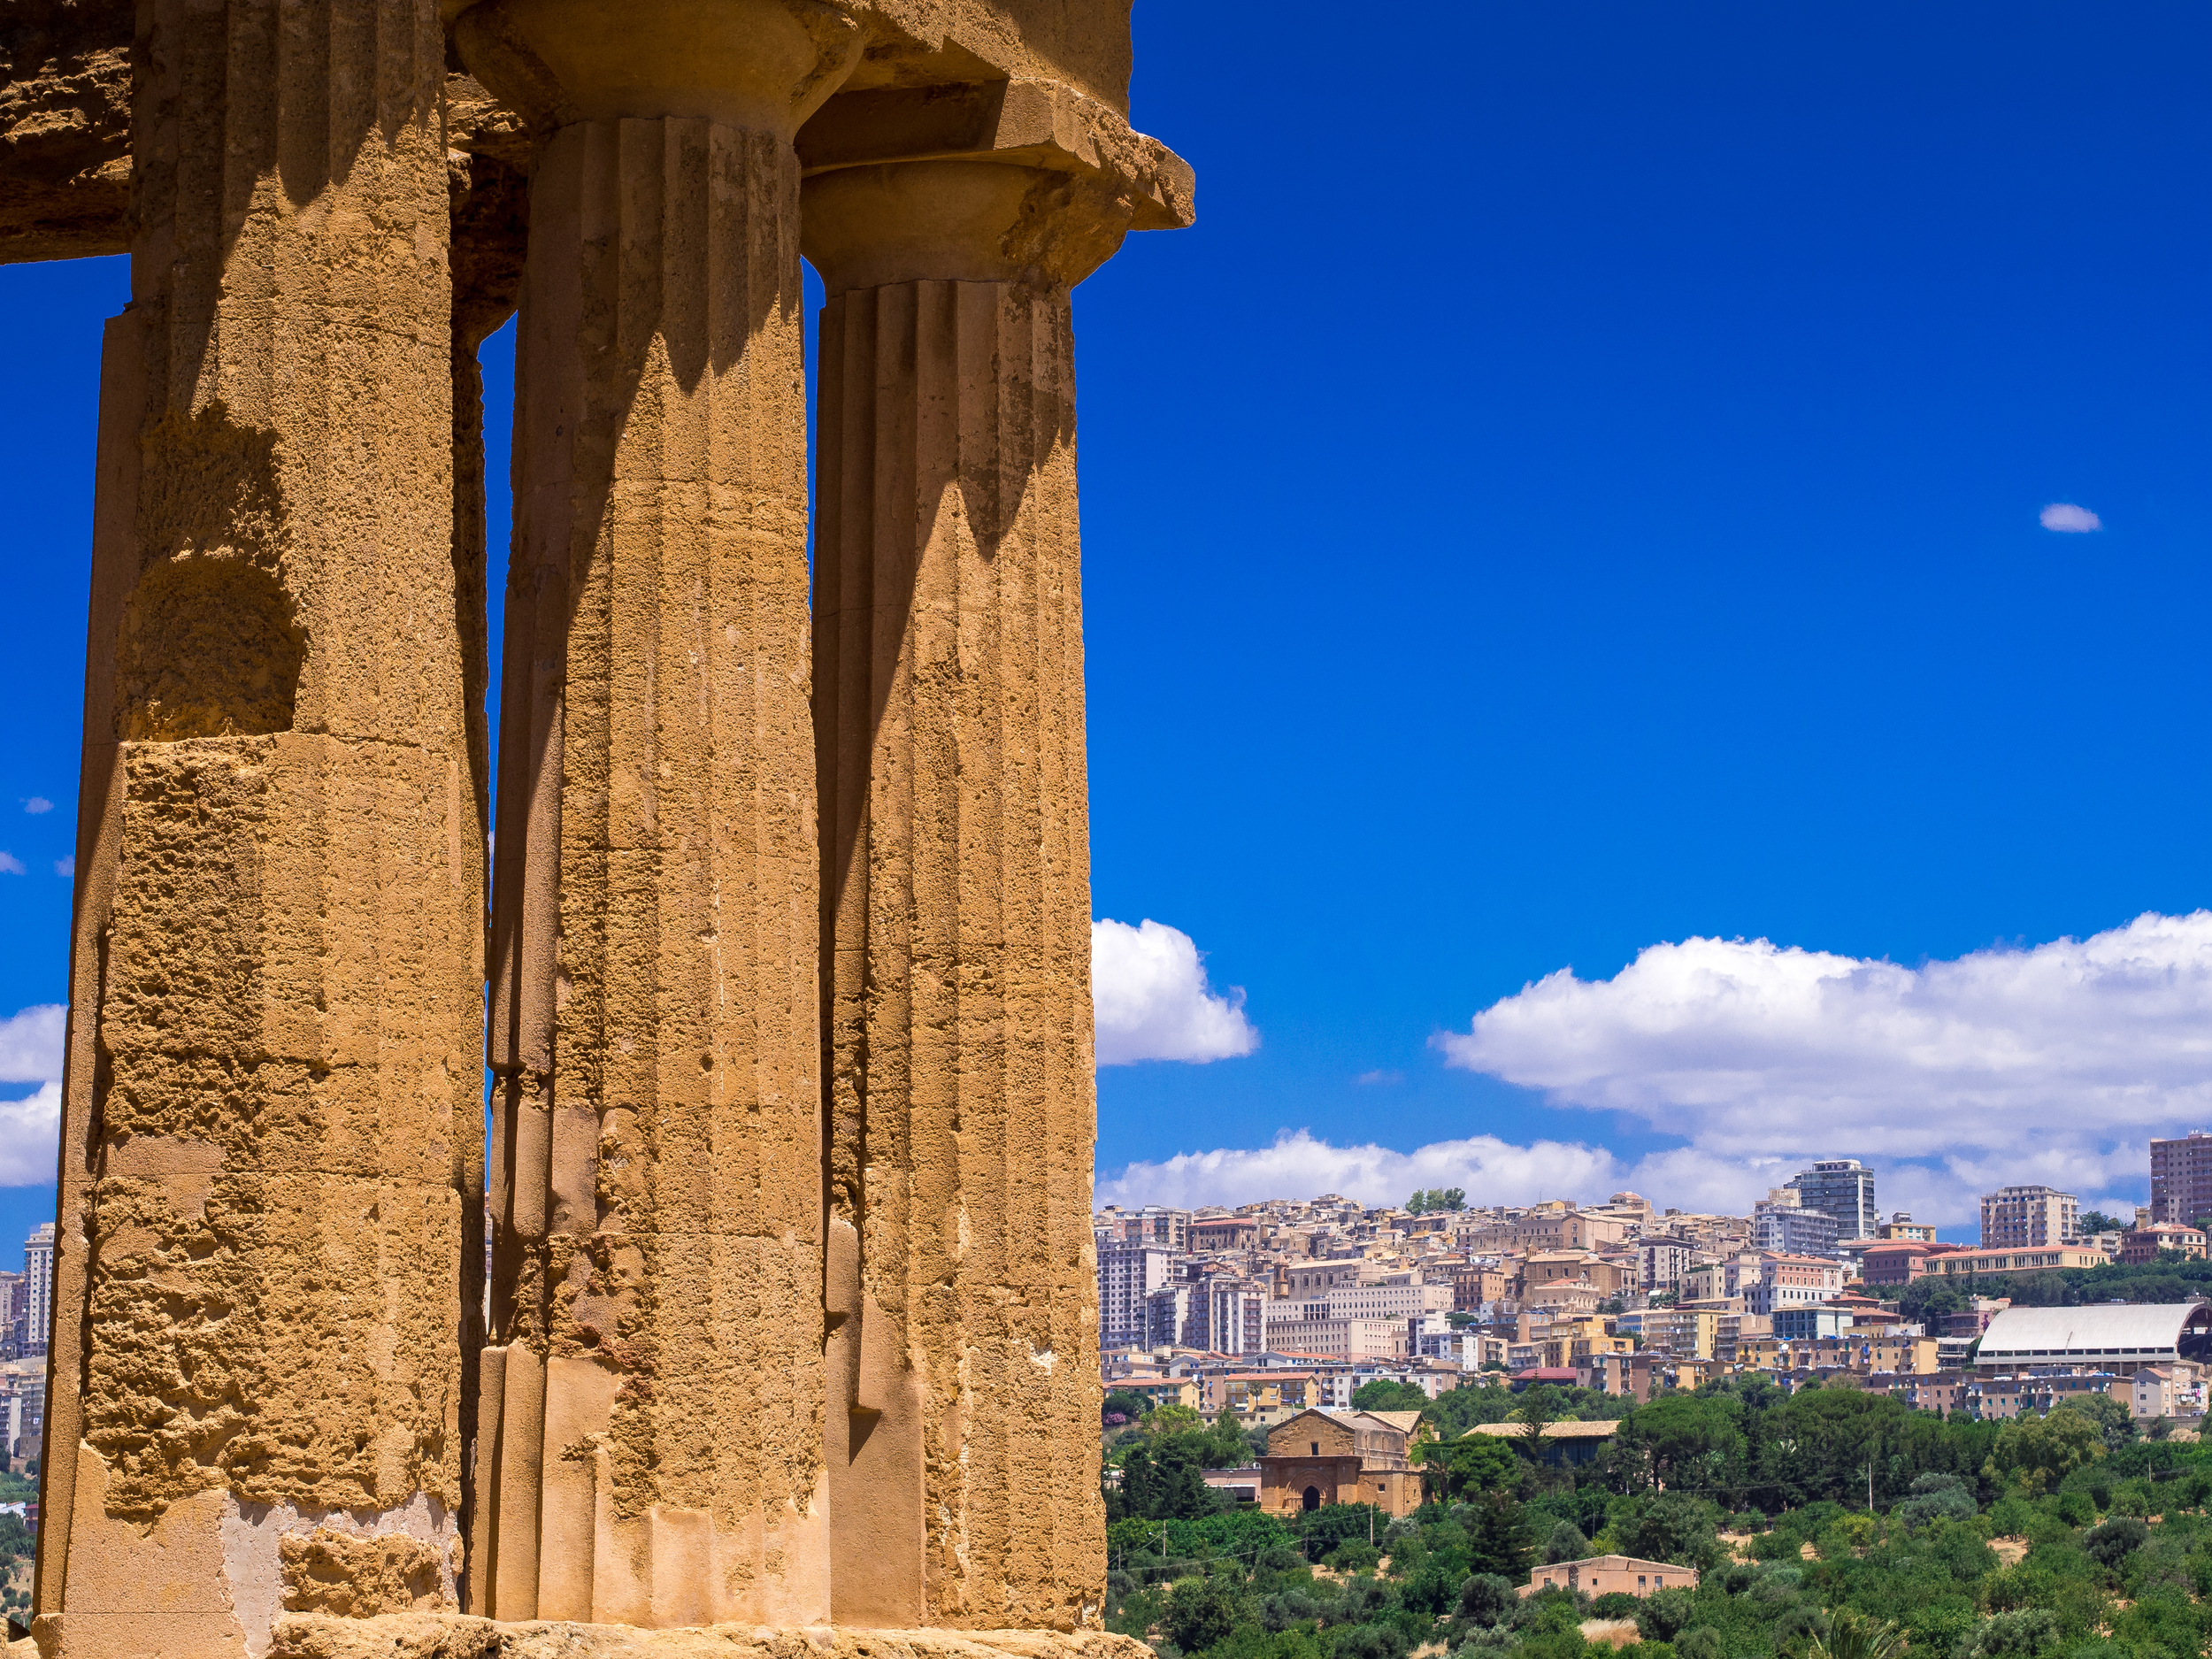 Pillars of Concordia with Agrigento in the background.